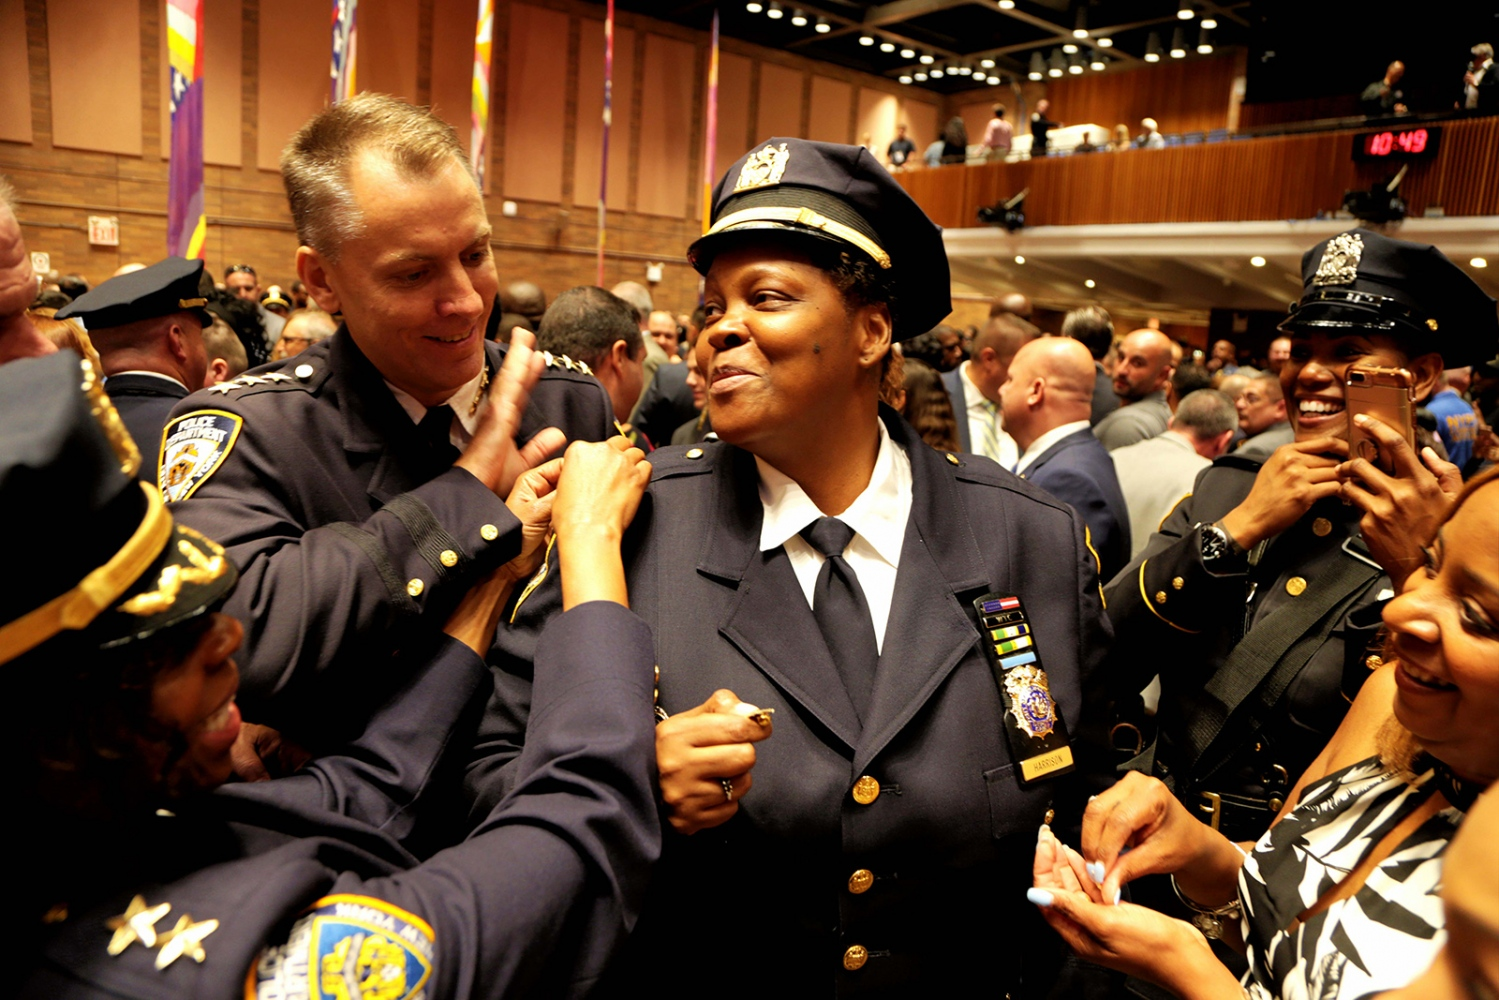 NYPD Deputy Chief Judith R. Harrison is all smiles and surrounded by colleagues after being promoted during ceremony at Police Headquarters in downtown Manhattan.